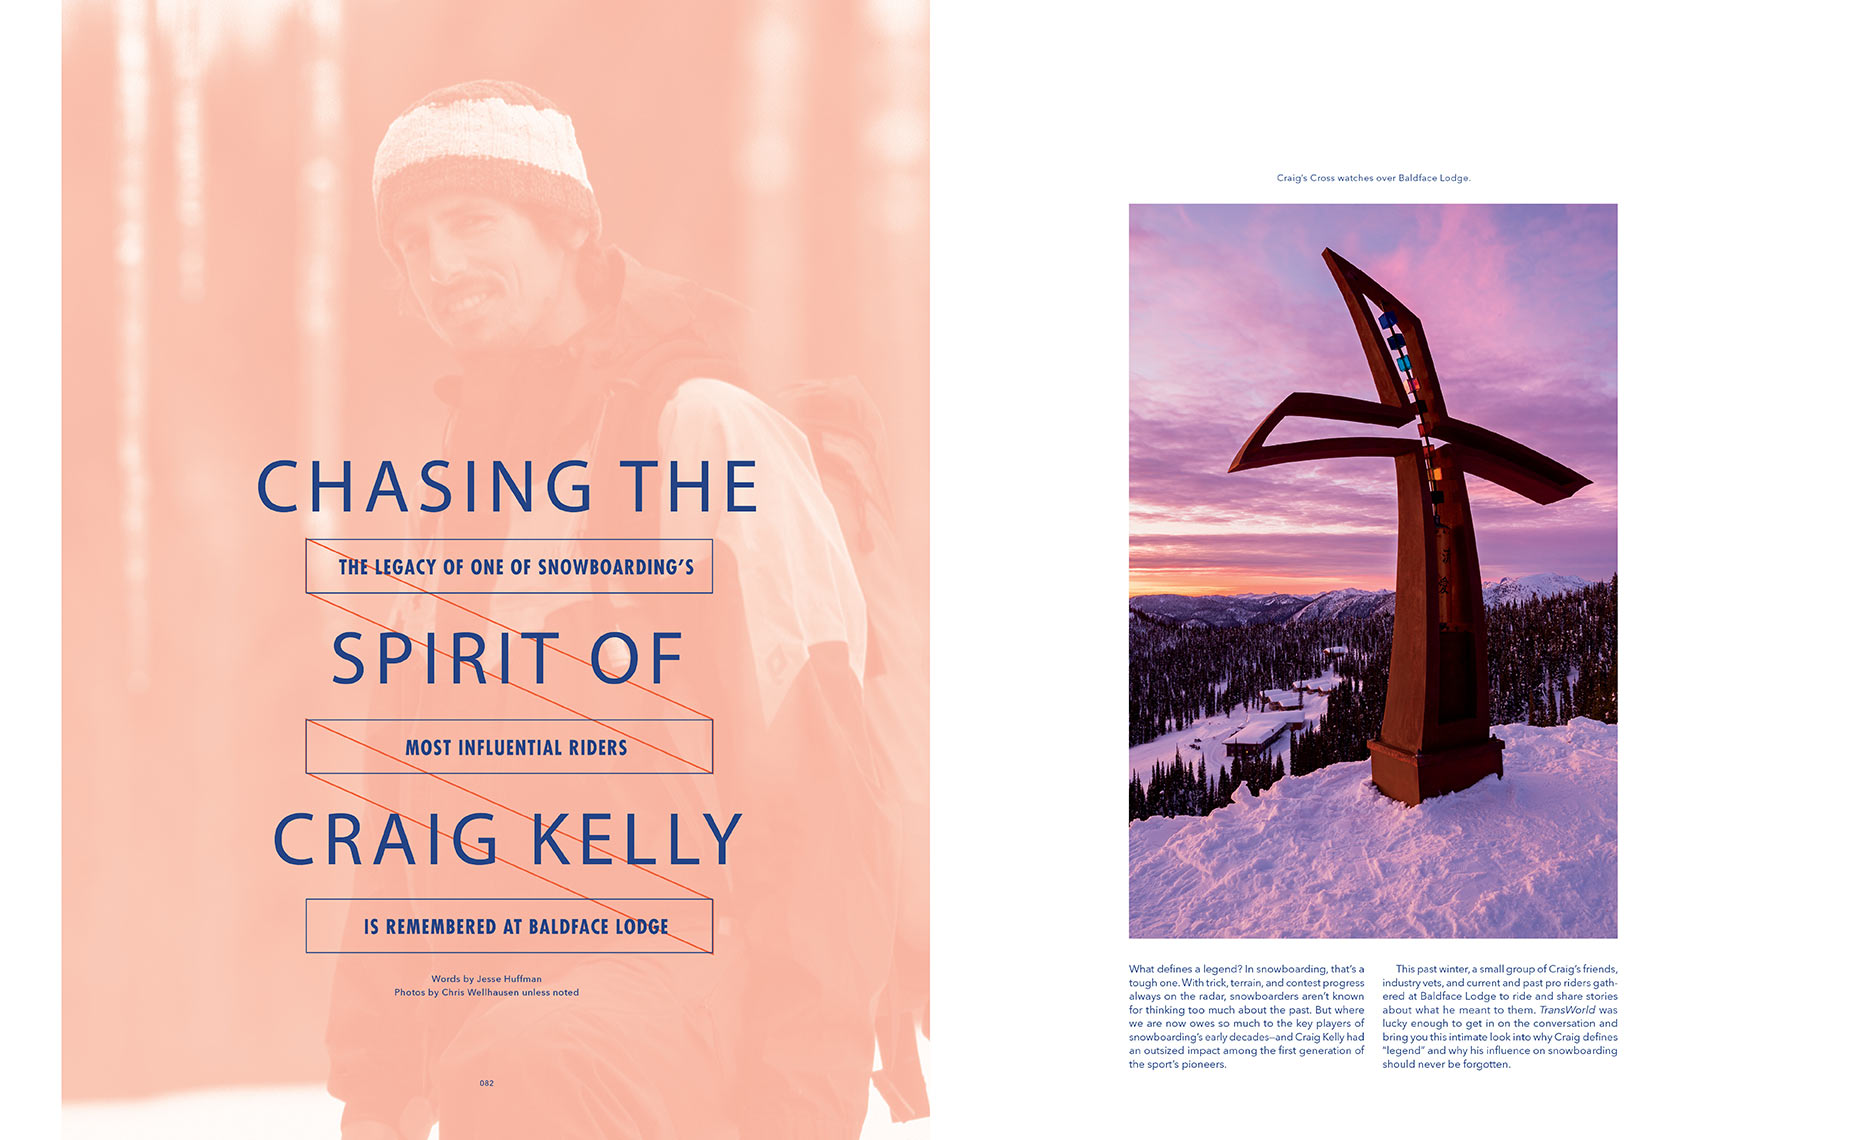 Chasing-The-Spirit-Of-Craig-Kelly-Chris-Wellhausen-01